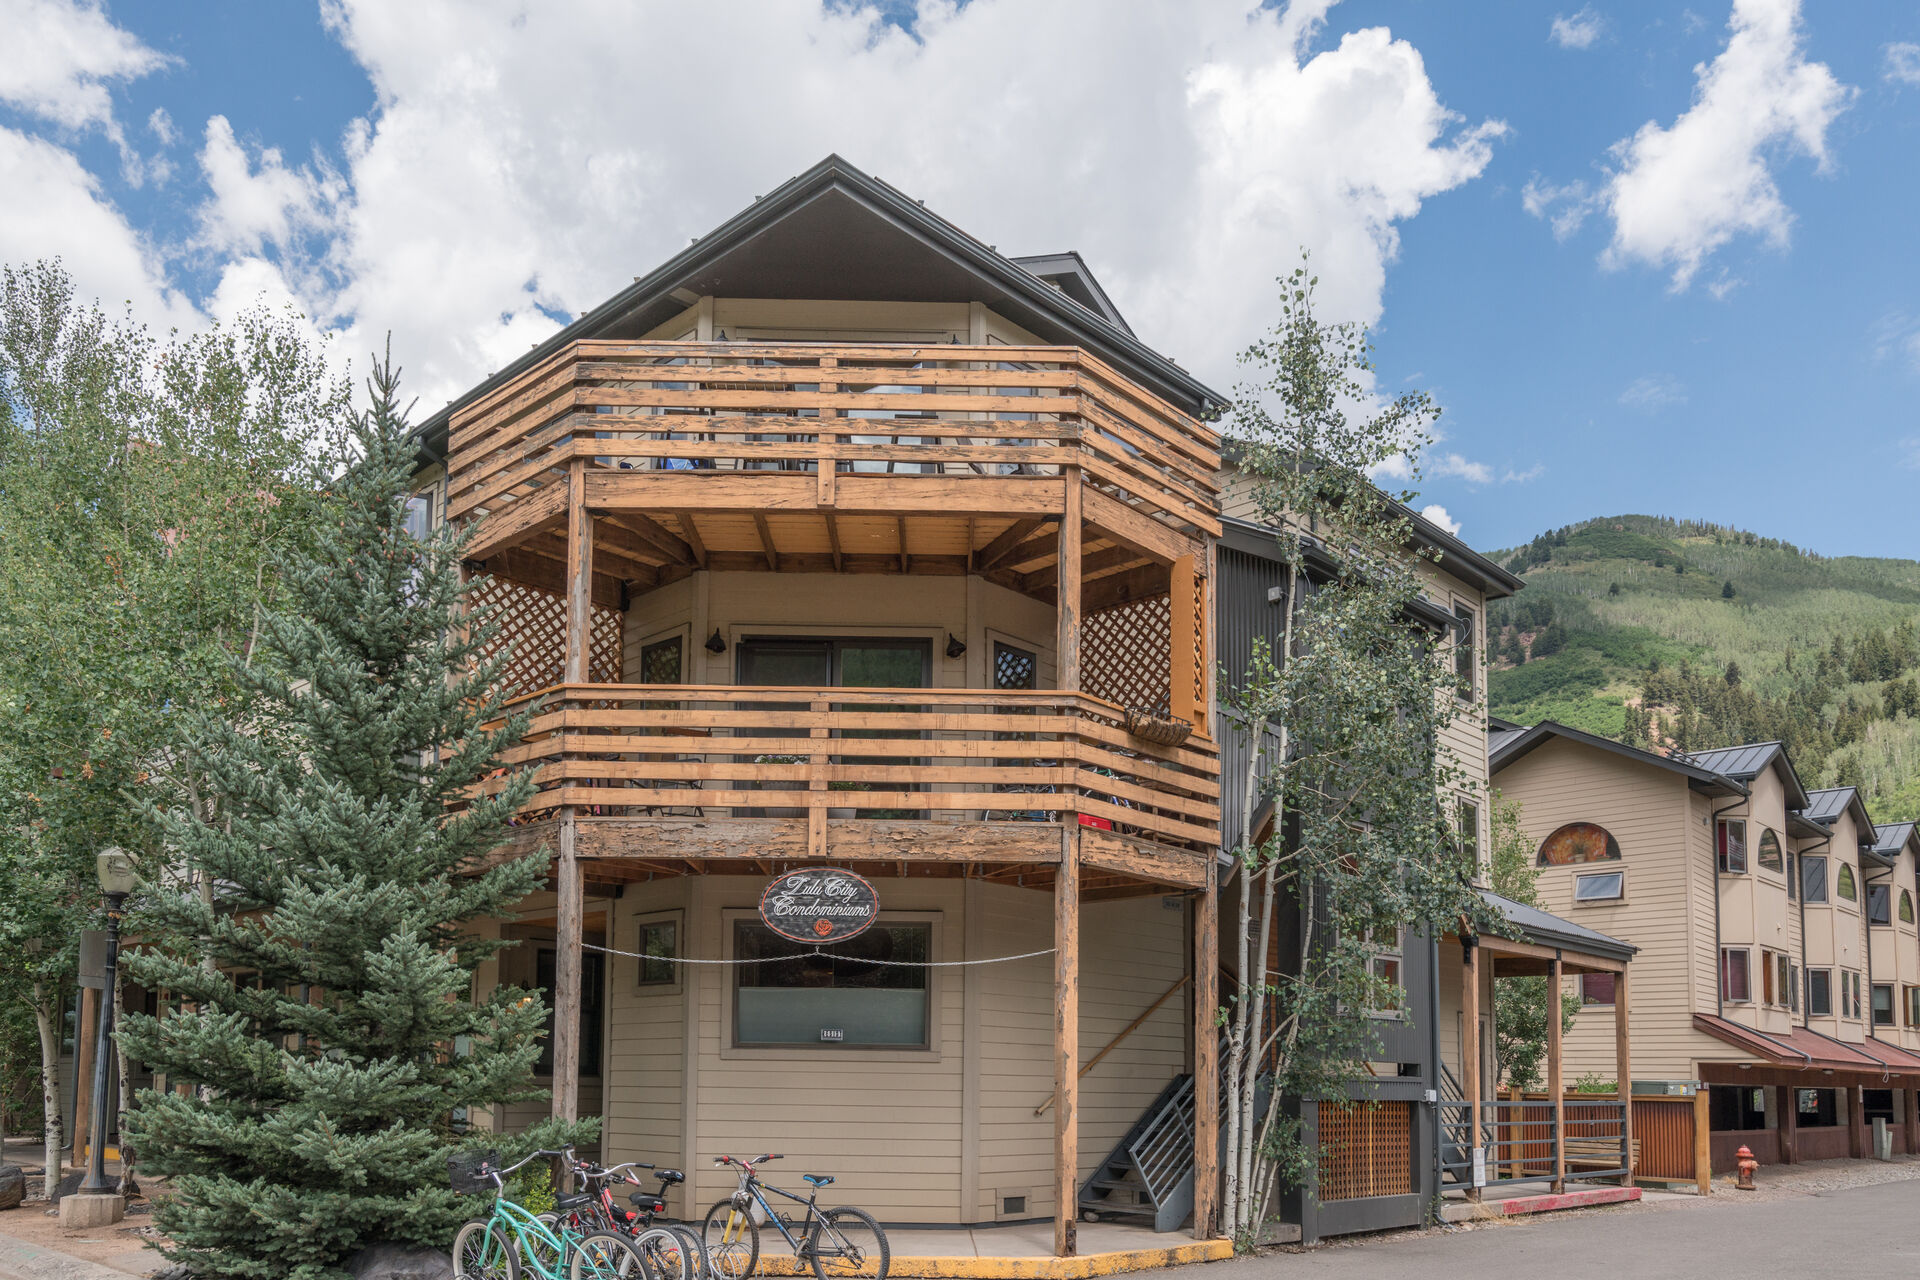 Exterior of this Vacation Rental in Telluride CO